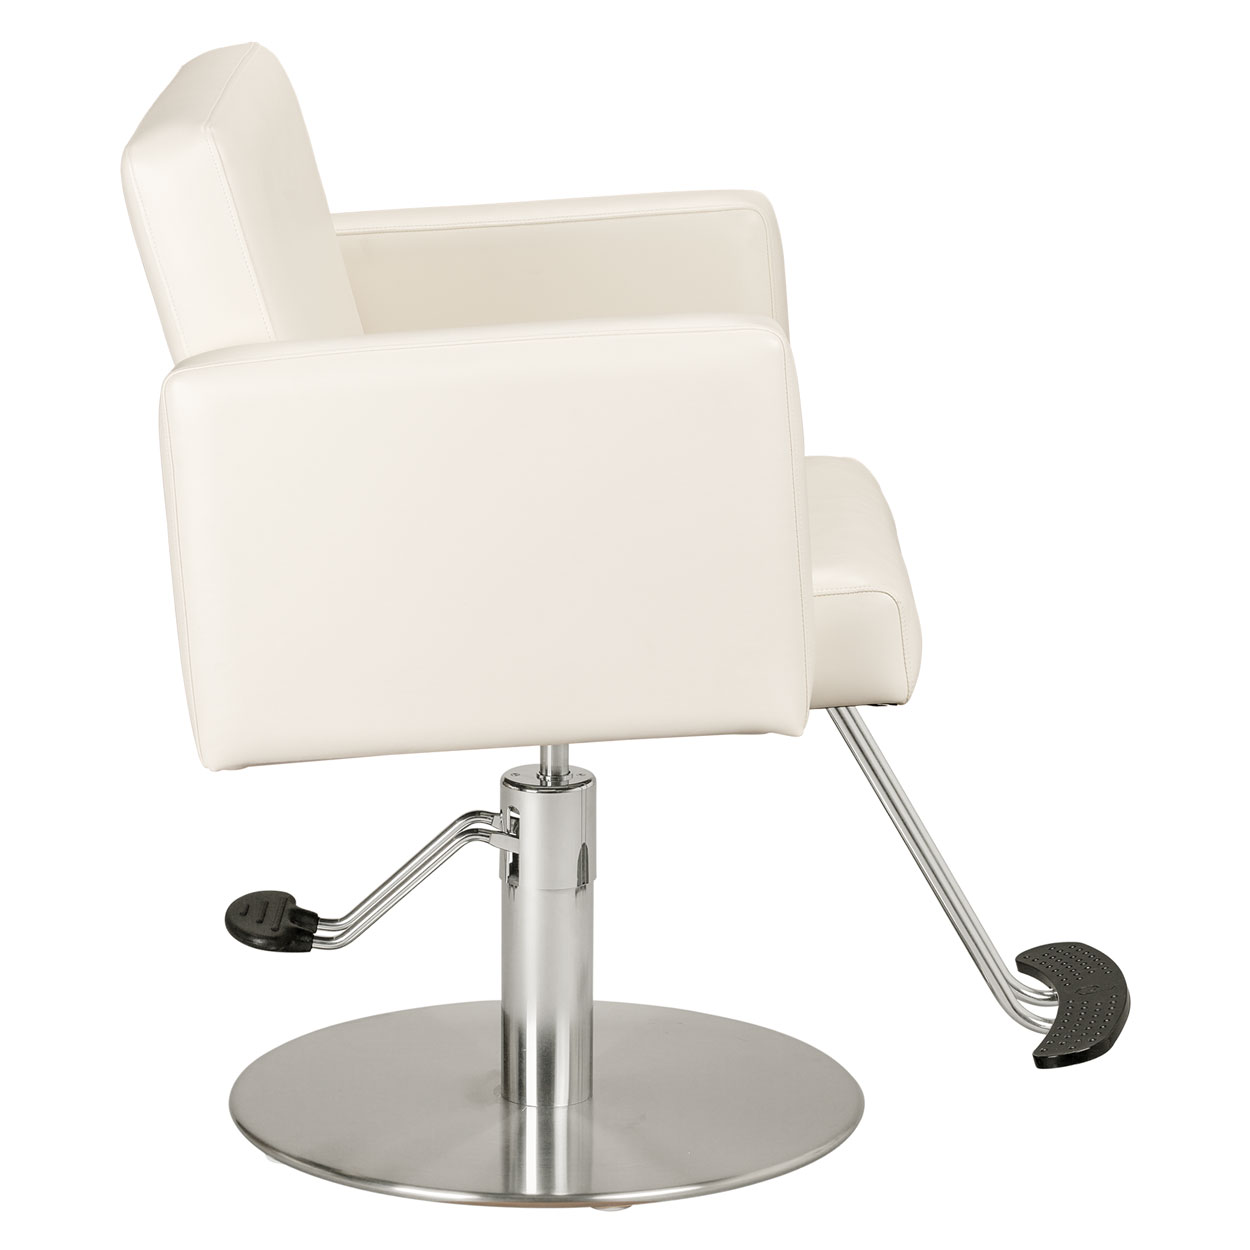 Pibbs 3406 Cosmo Hair Stylist Chair alternative product image 5